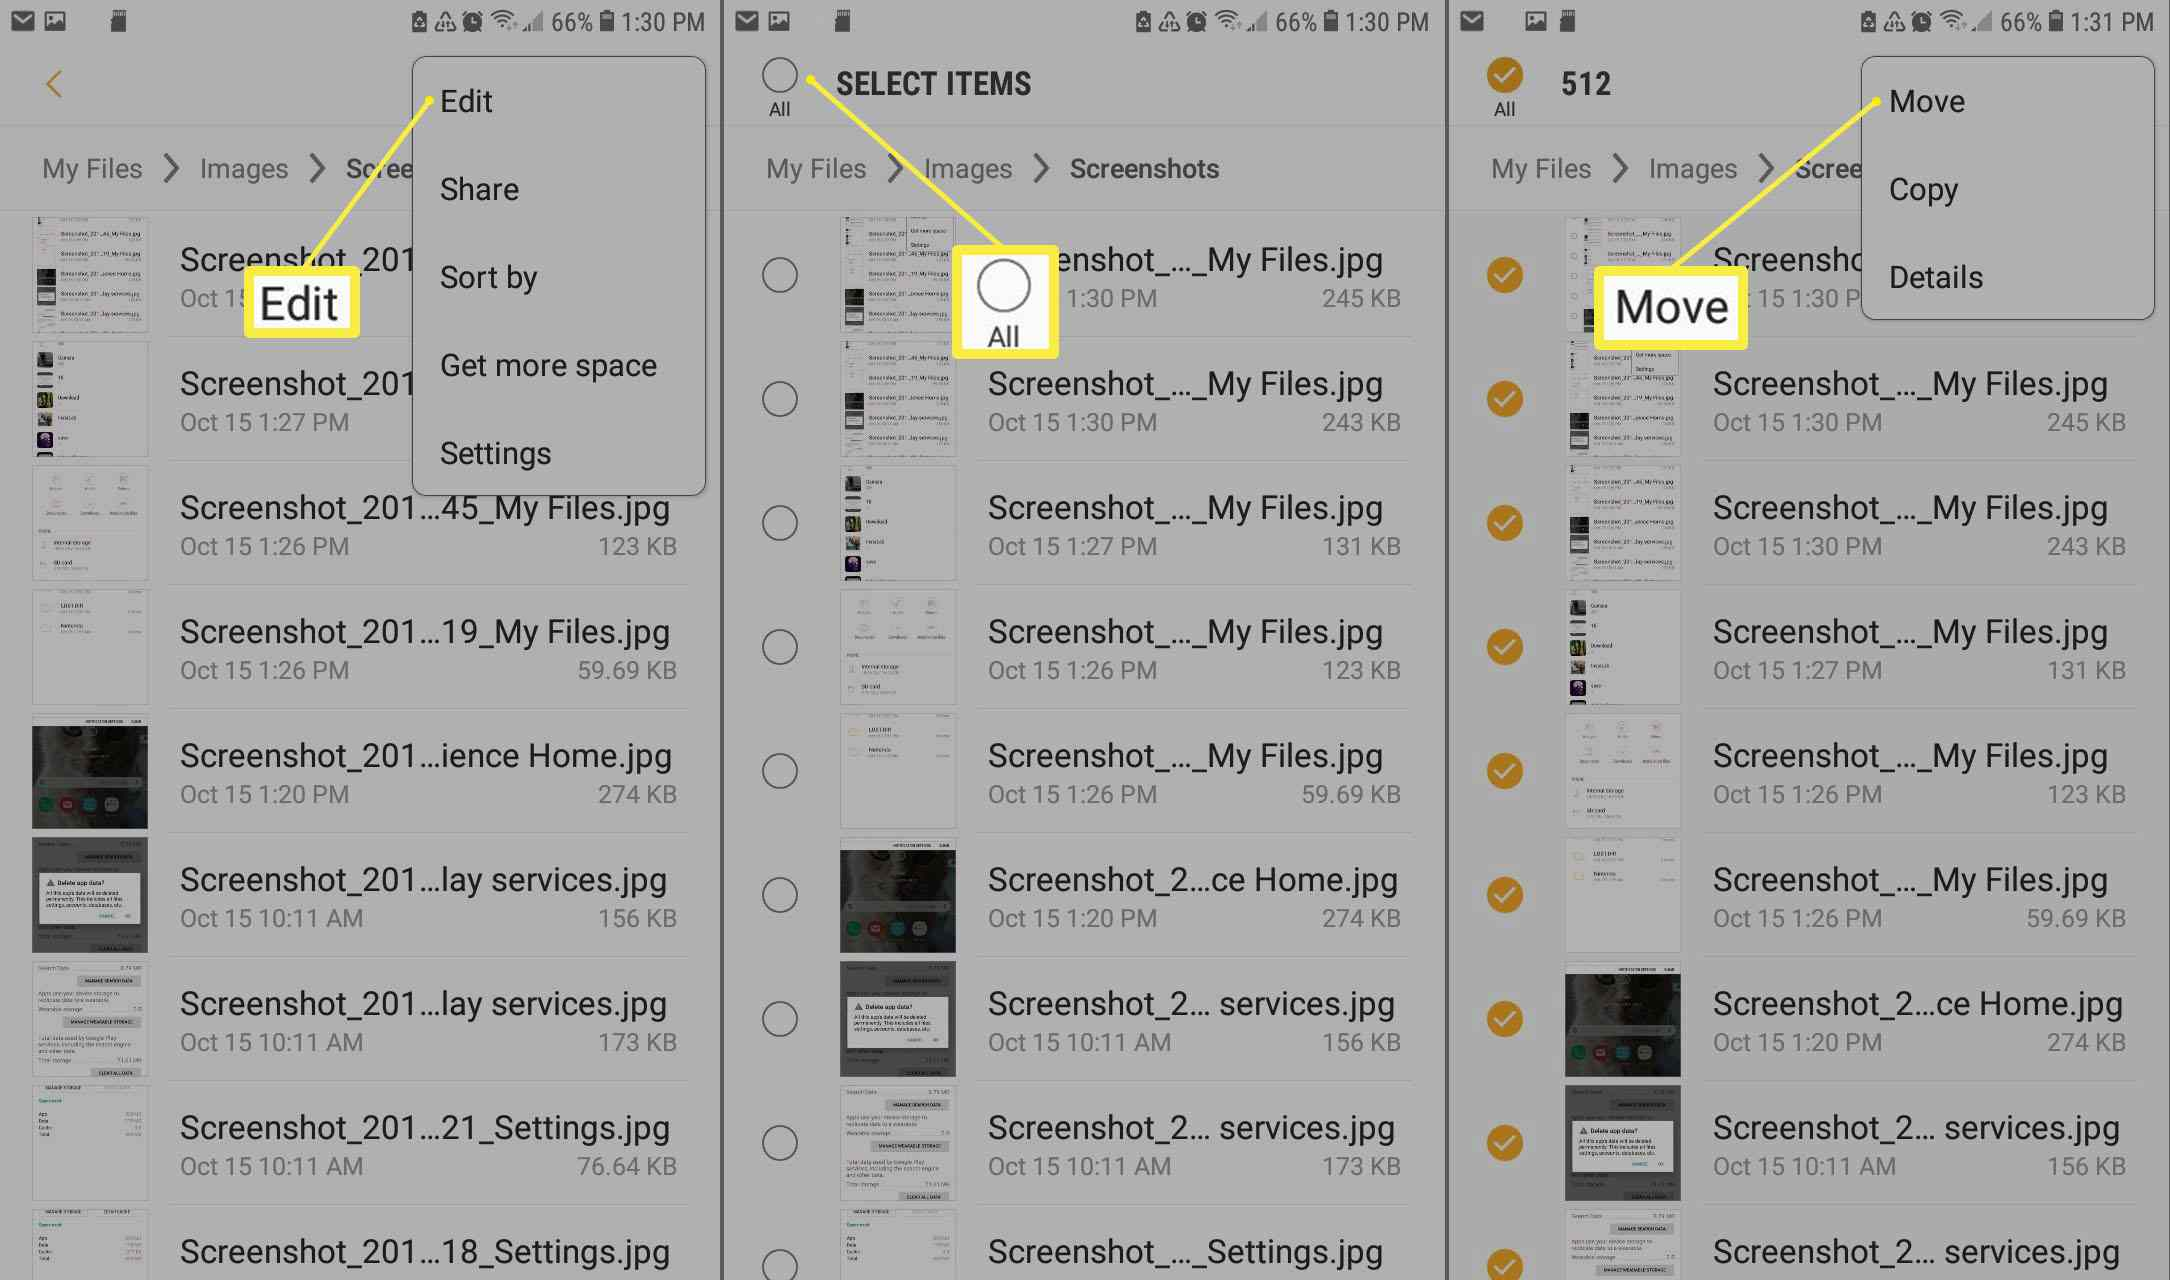 Select the files you wish to transfer in the My Files app.